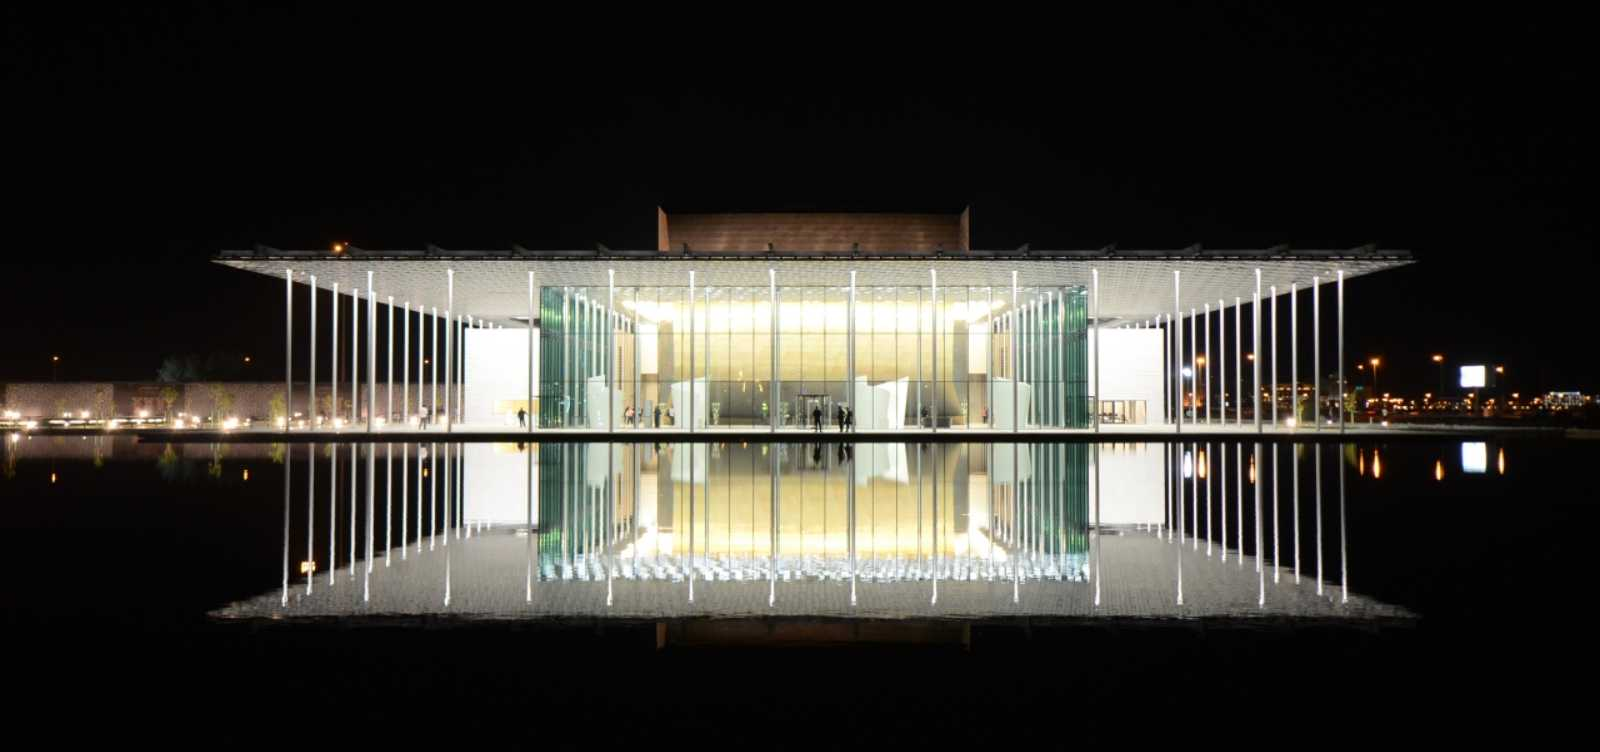 National theatre of bahrain by architecture studio for Architecture studio